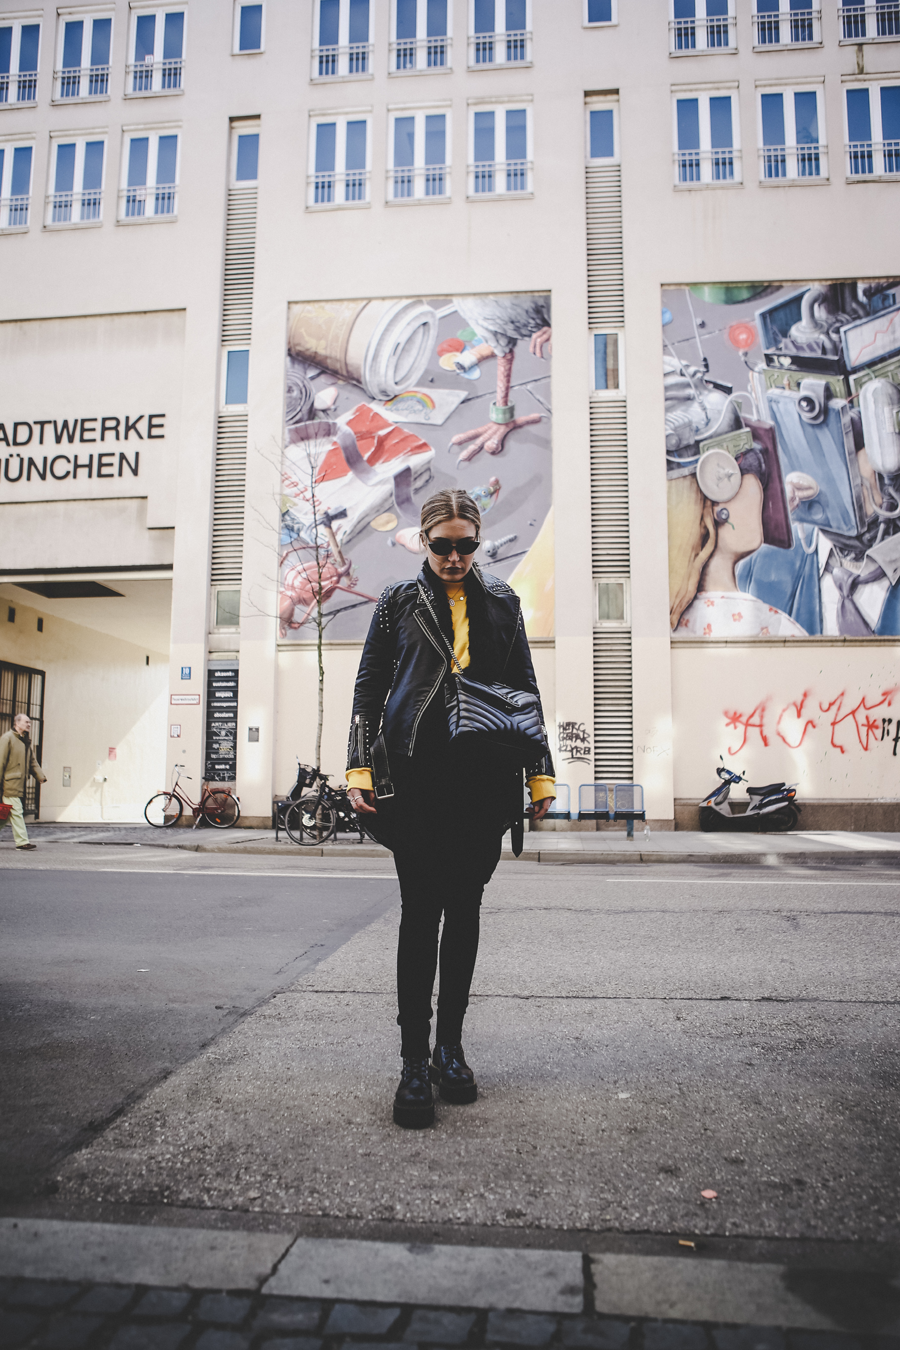 Streetstyle-leather-lauralamode-outfit-ootd-leather-topshop-nakd-dr martens-munich-muenchen-asos-muc-deutschland-blogger-fashionblogger-mode-modeblogger